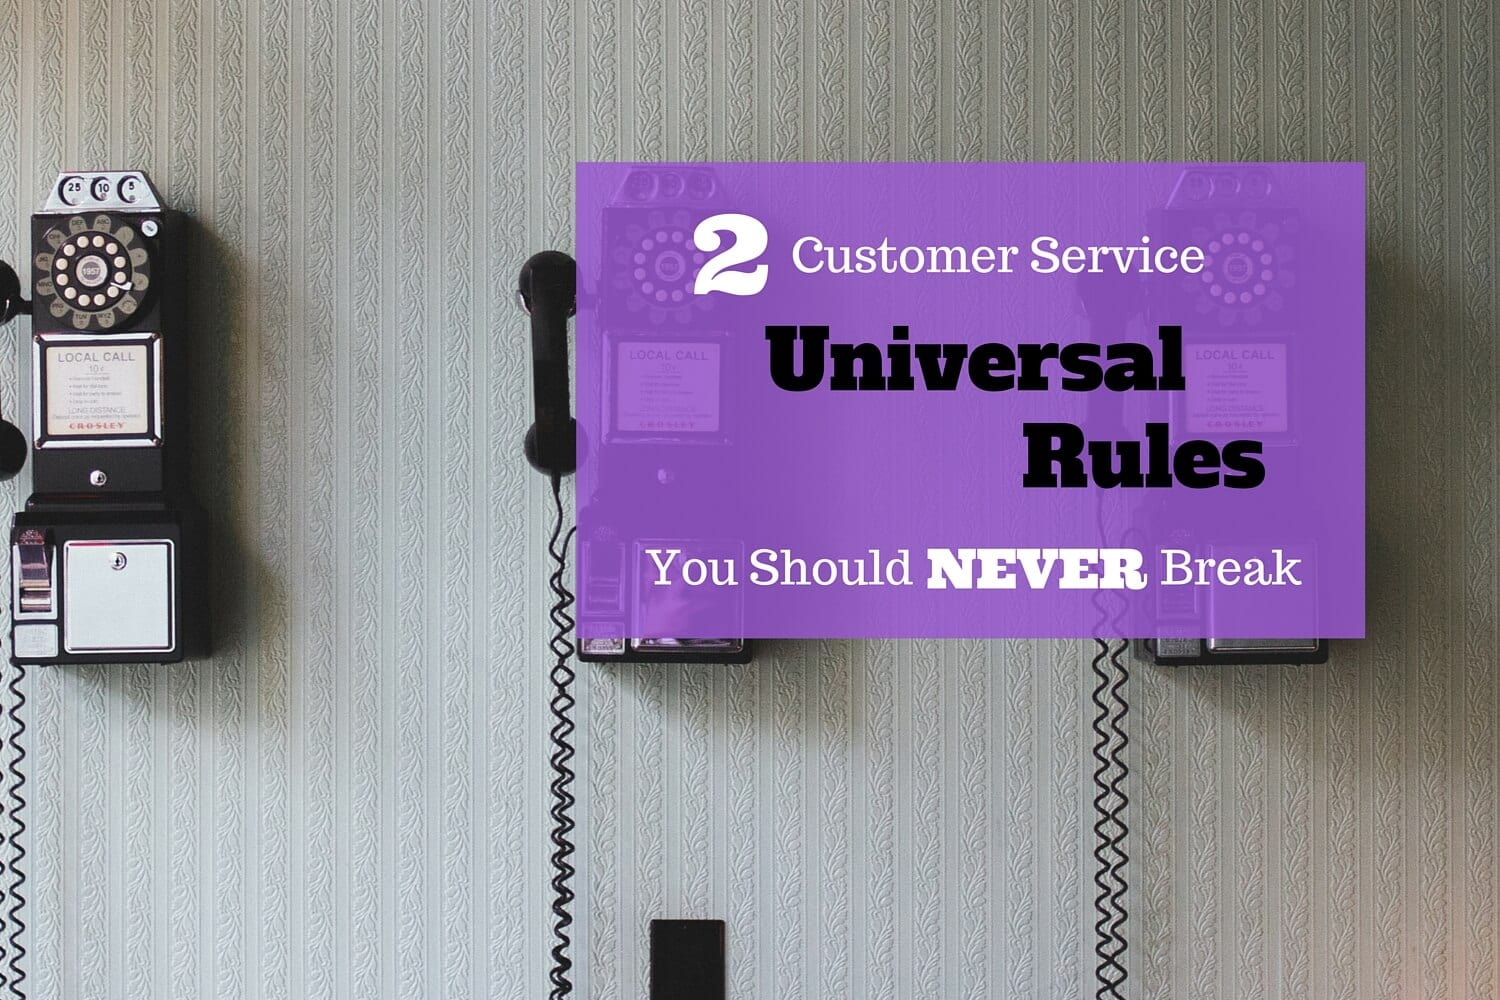 Customer service rules